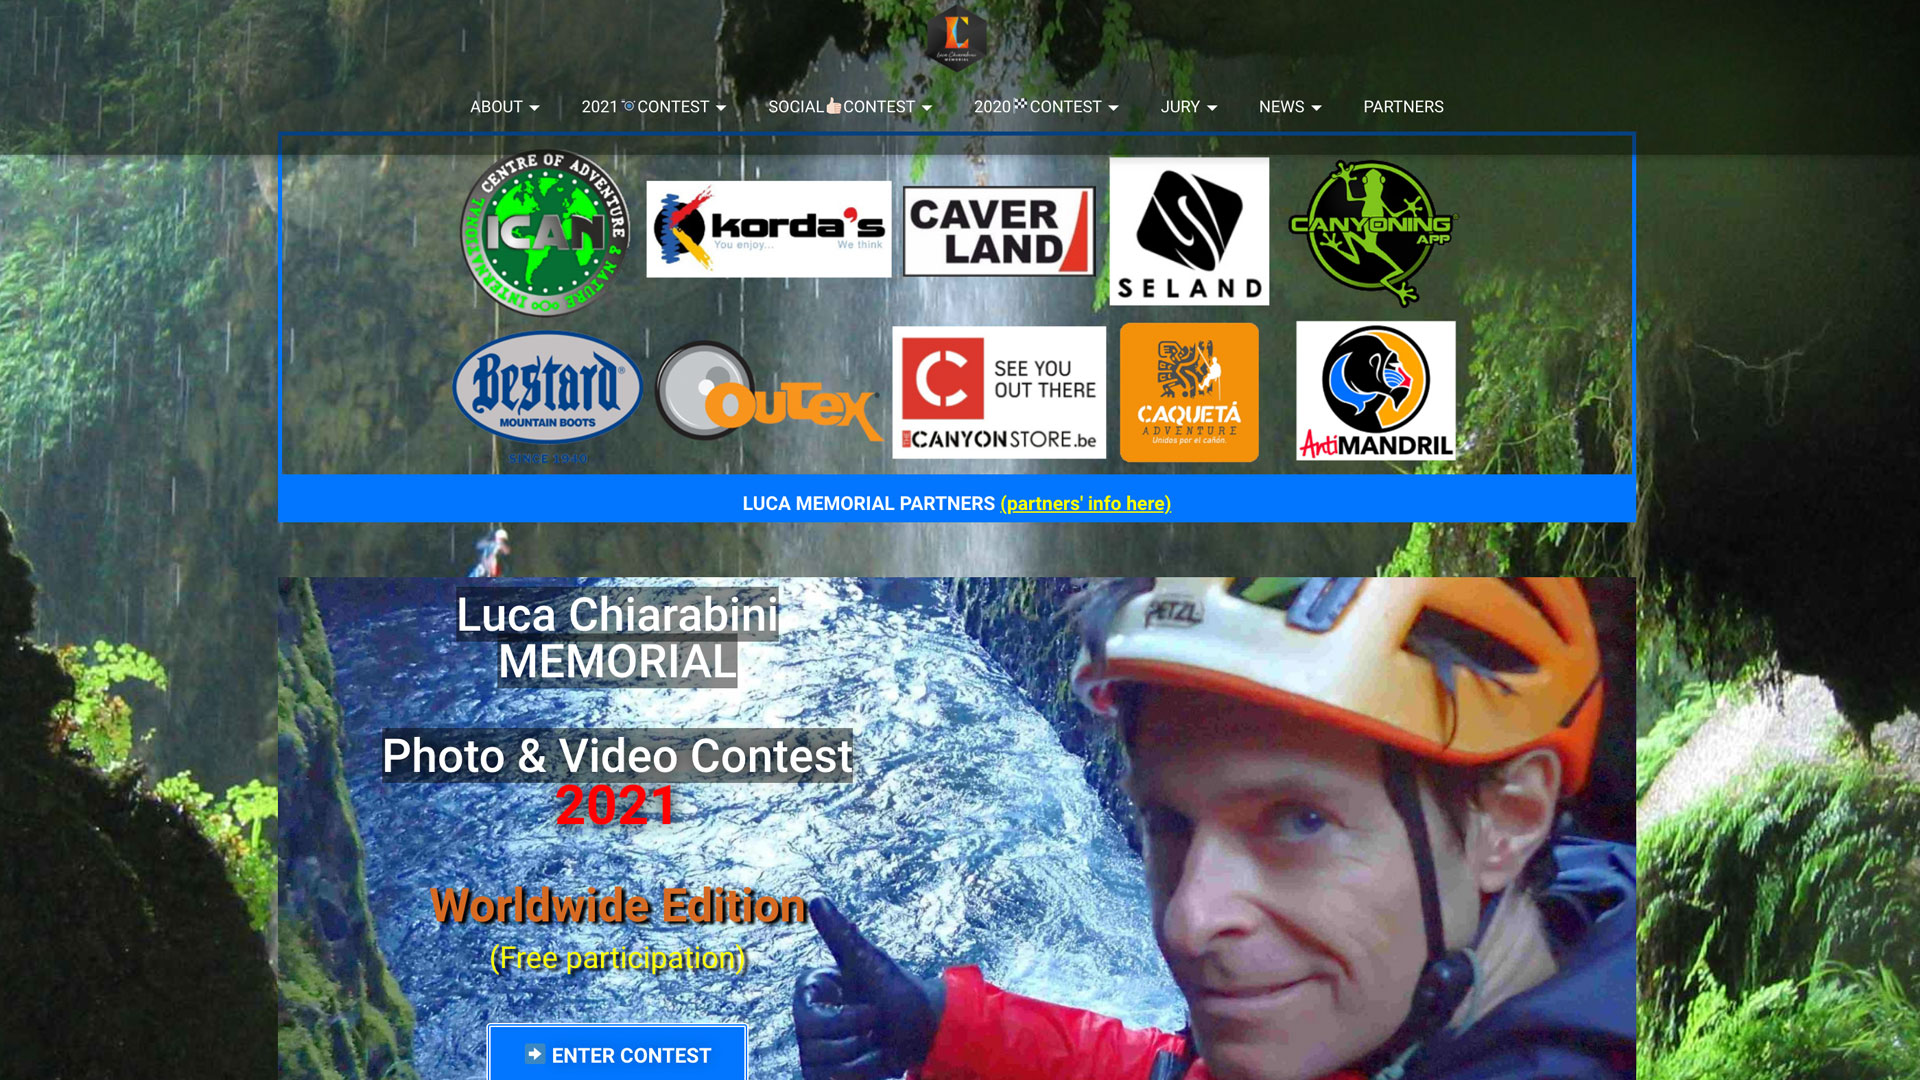 Open call for proposals for caving and canyoning international events